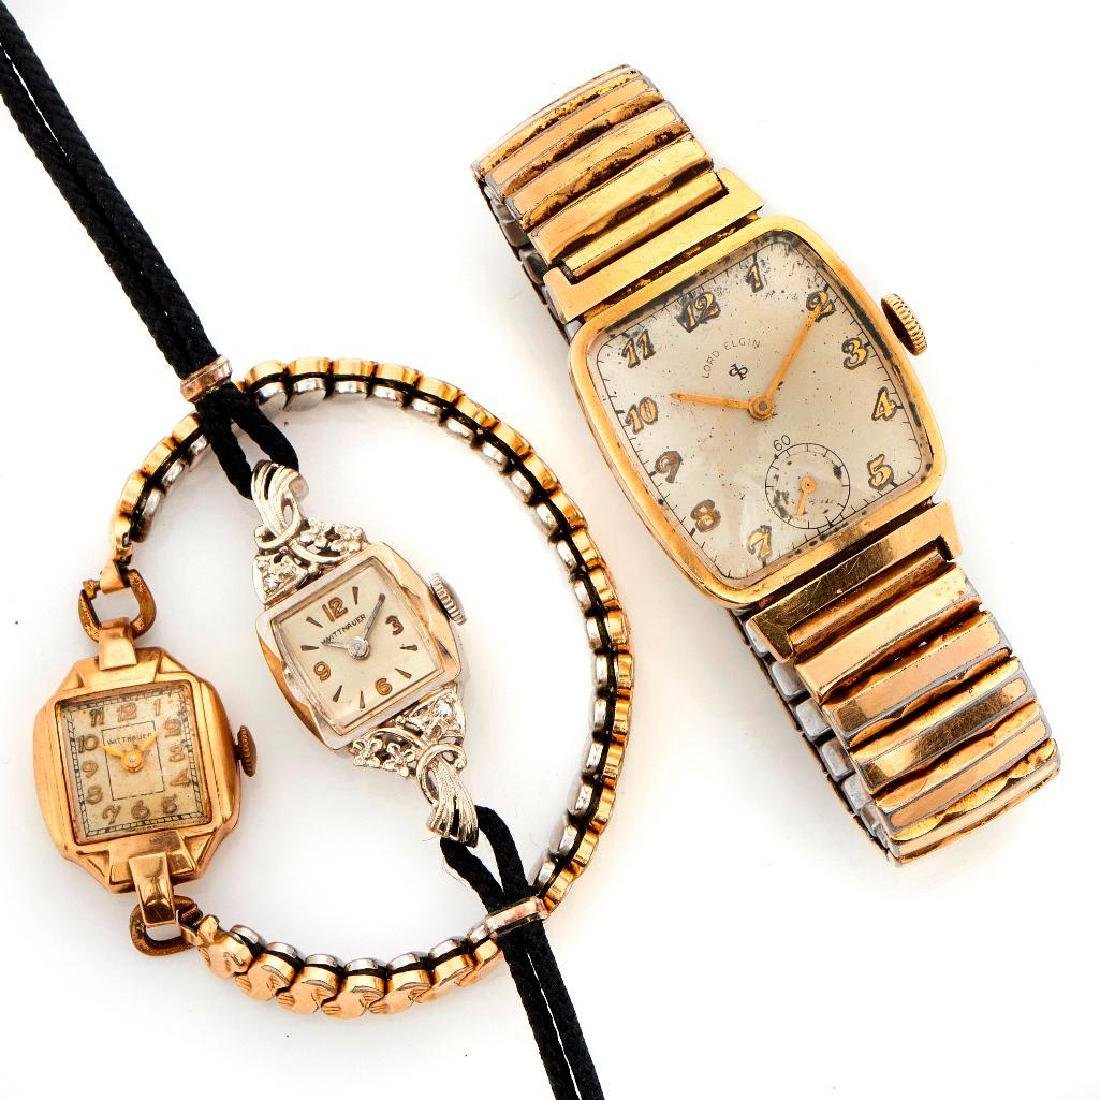 Wittnauer and Elgin gold watches